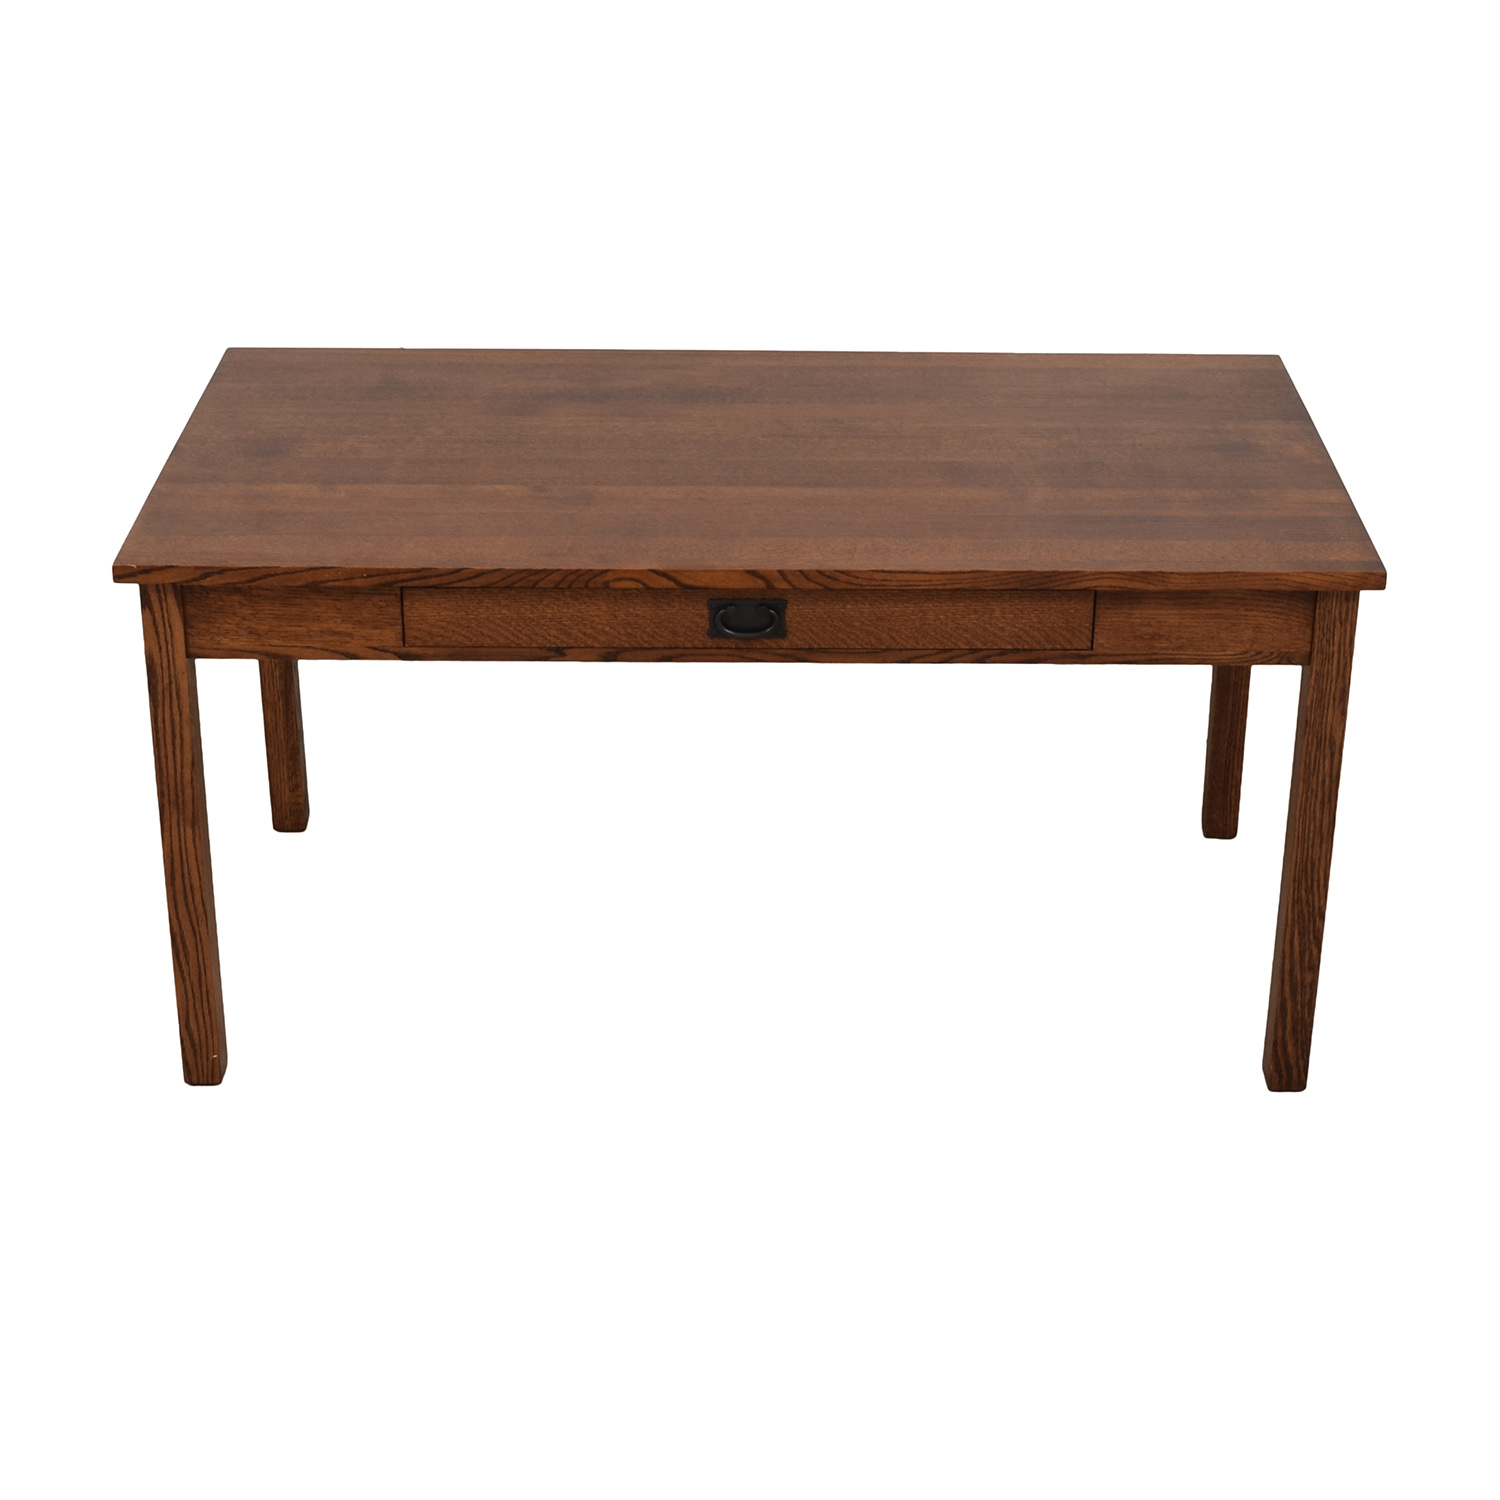 Mission Style Wood Desk dimensions